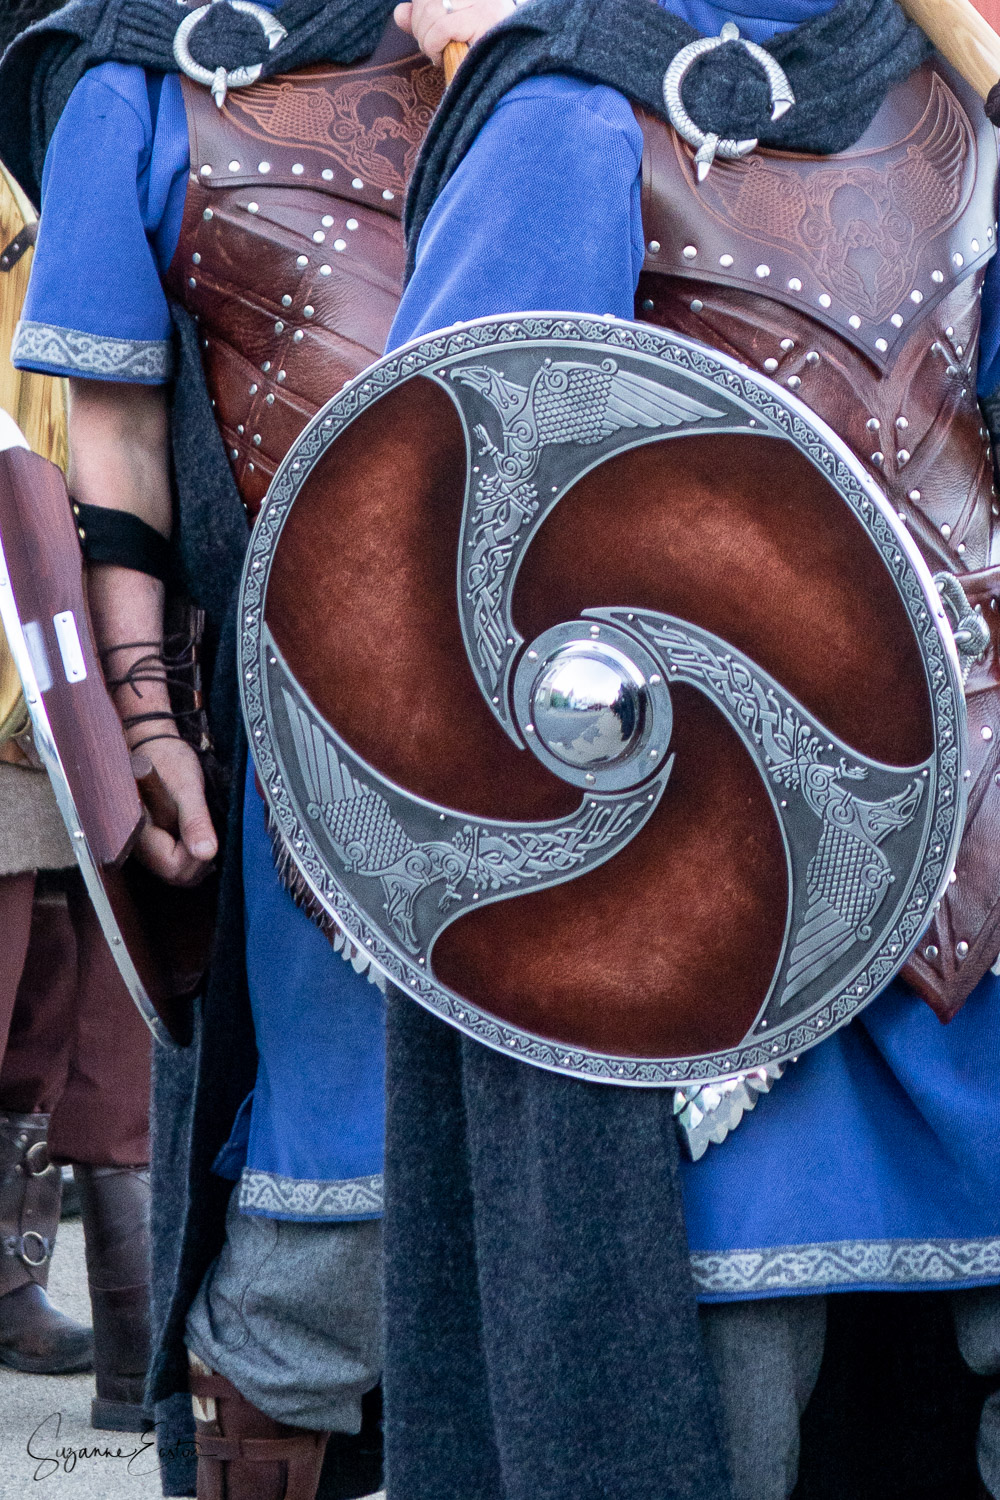 Shields and tunics of Jarl Squad in Lerwick